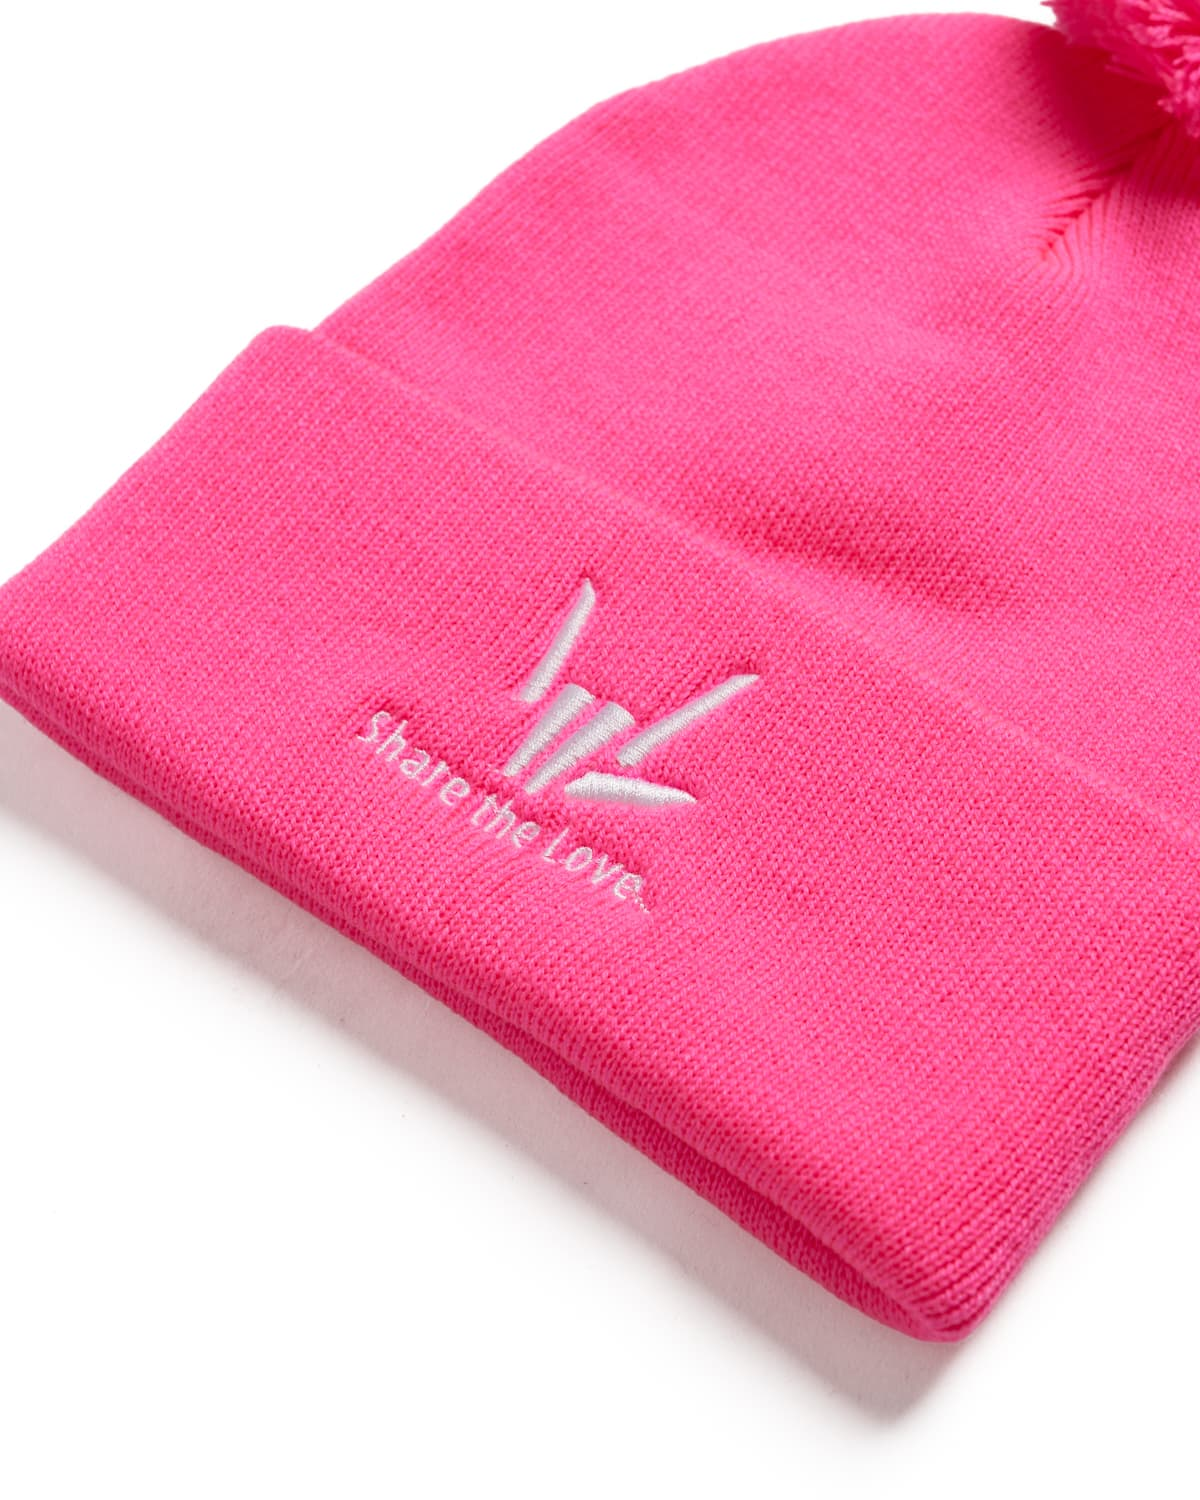 Share The Love Beanie - Pink/White